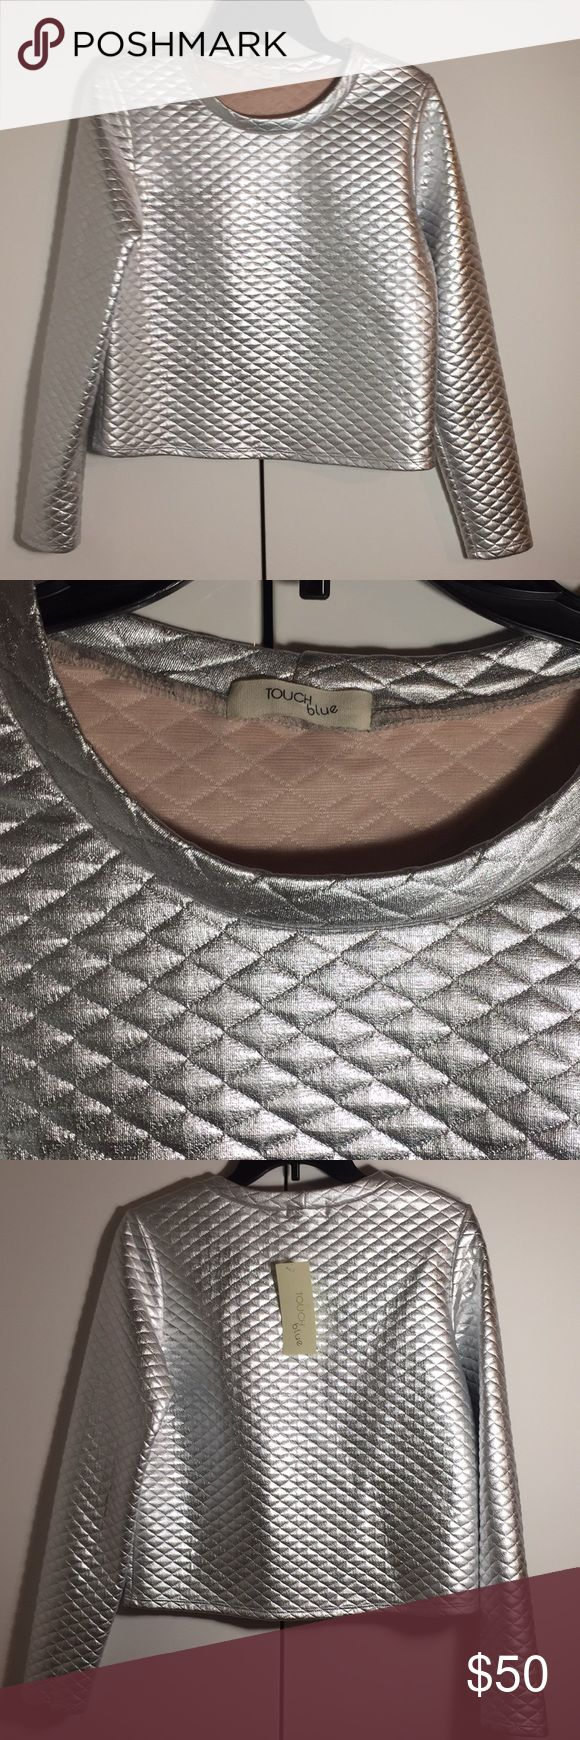 NWT Shiny Silver Metallic long sleeve top Super shiny & metallic quilted  long sleeved top by Touch Blue. Sample size small. Your wearable space suit! Tops